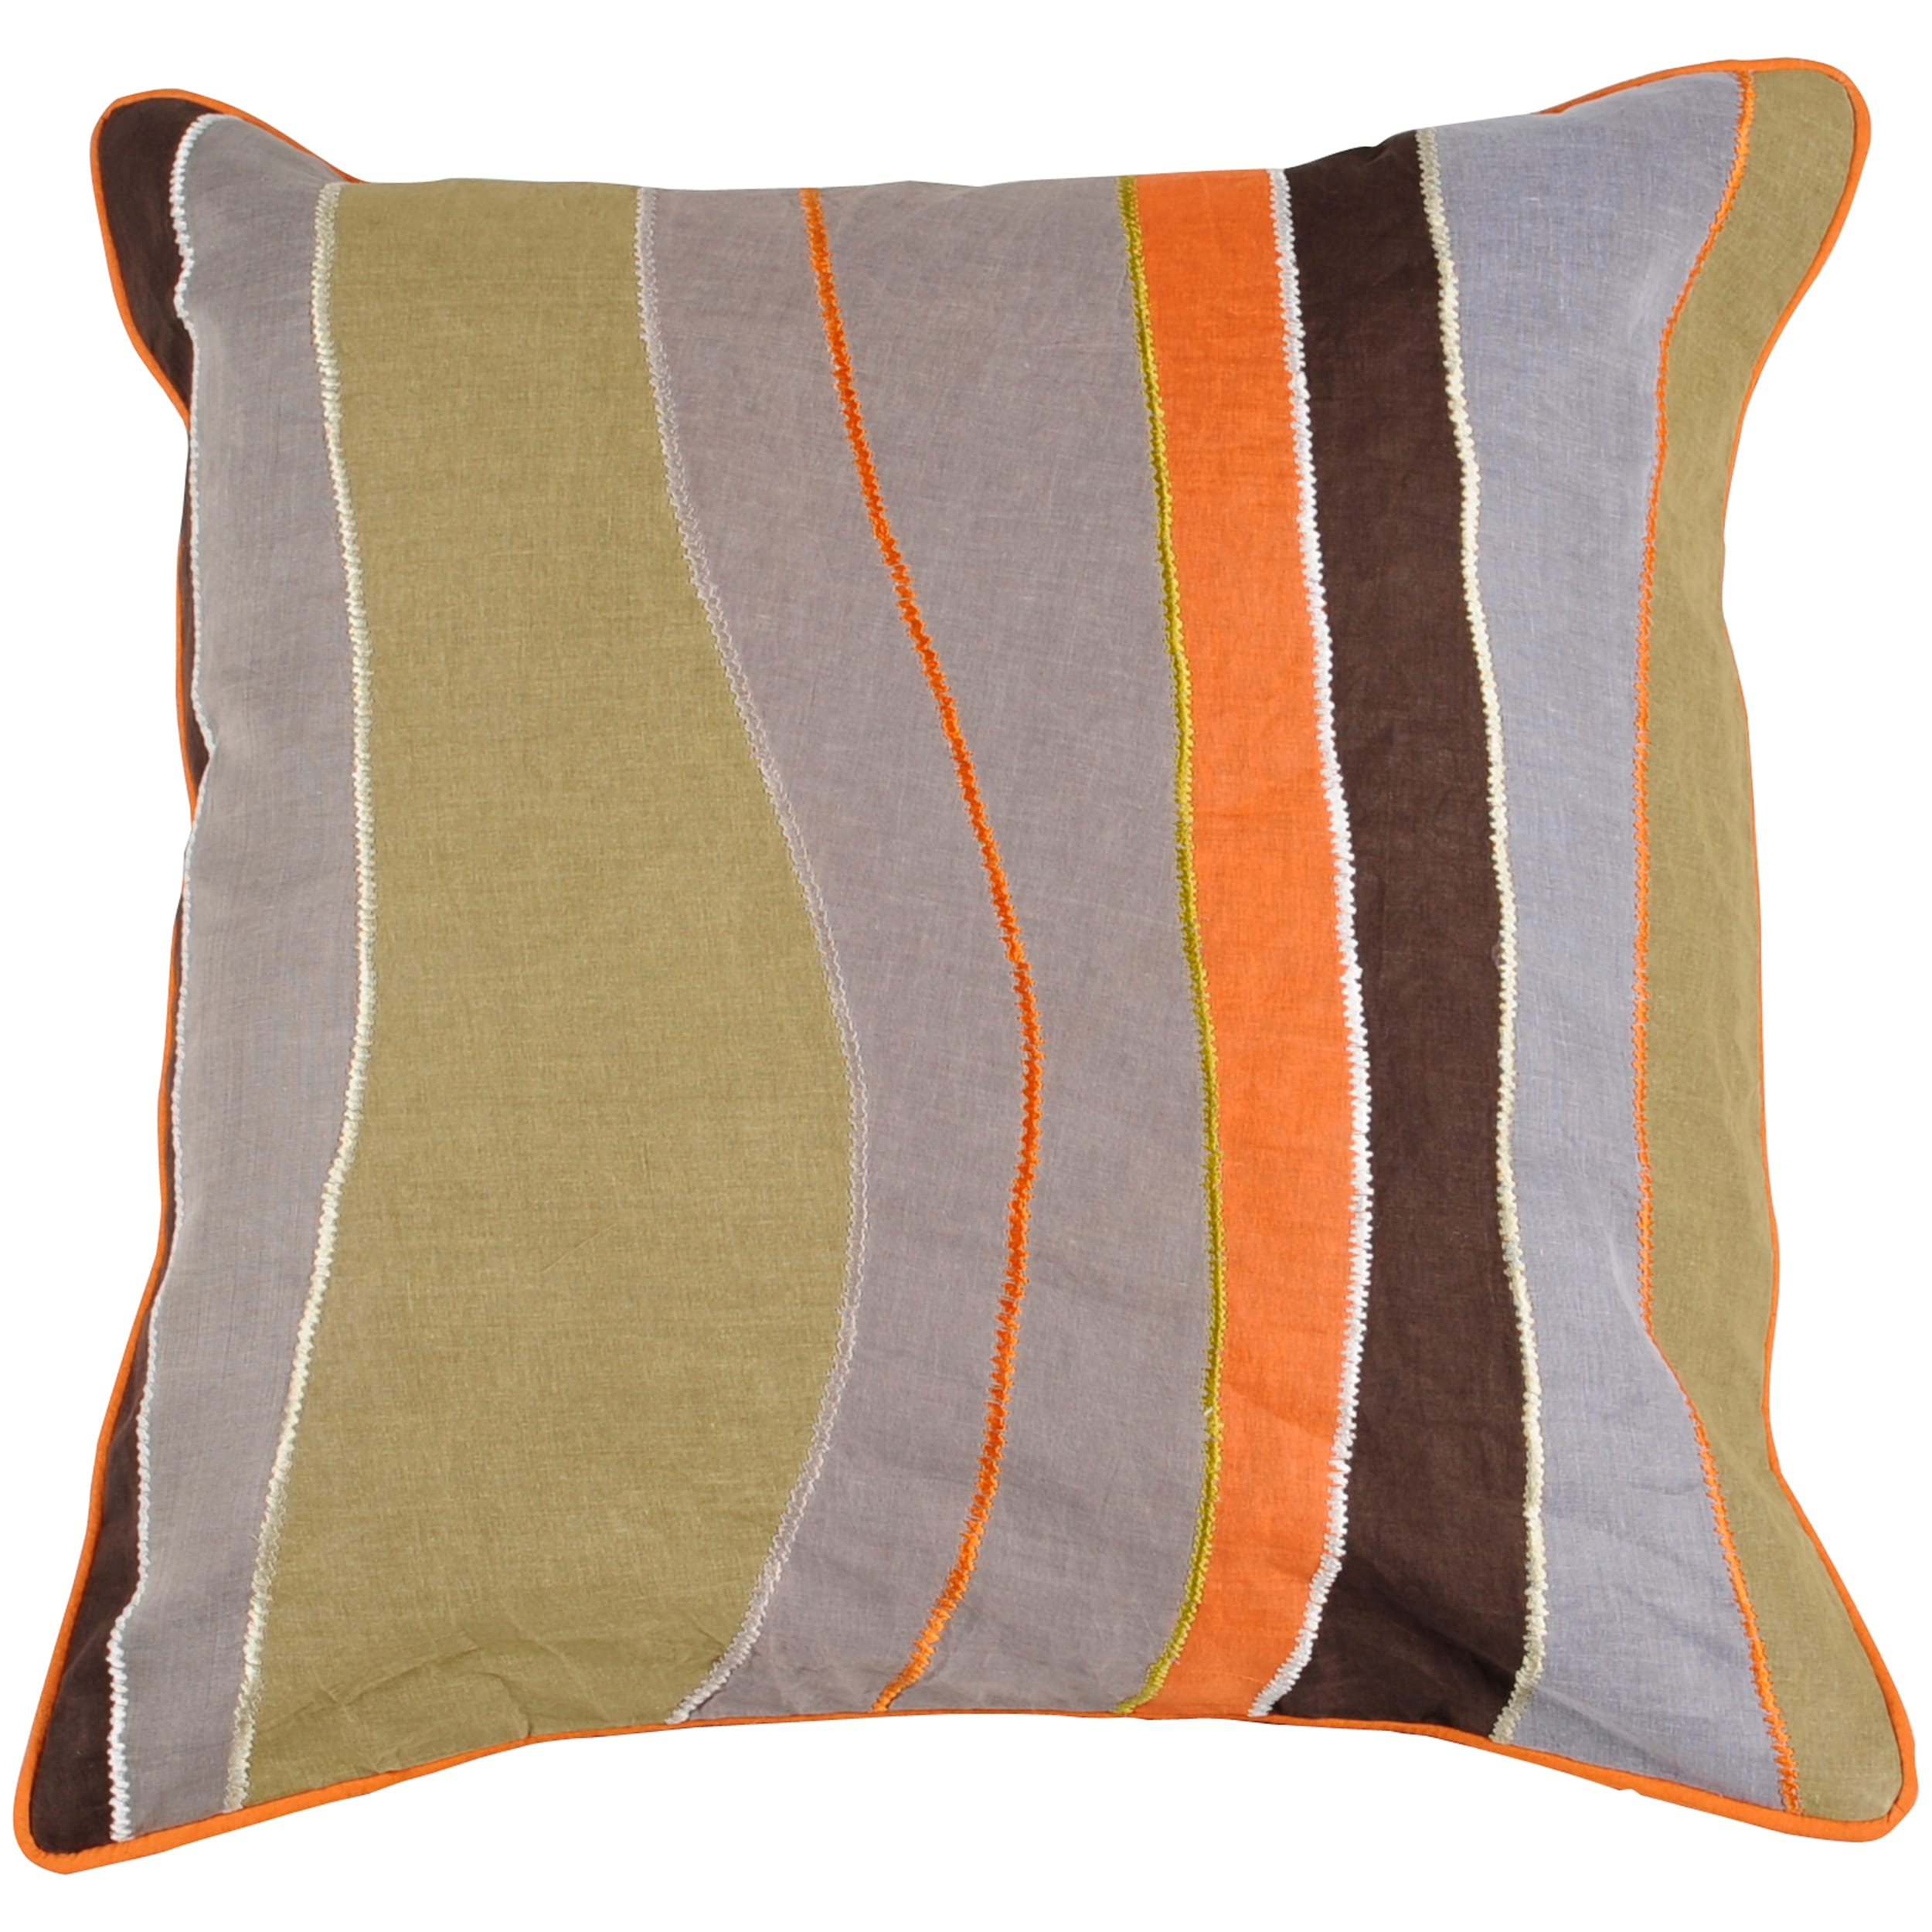 Pate 22-inch Square Brown/ Sage/ Grey Decorative Pillow